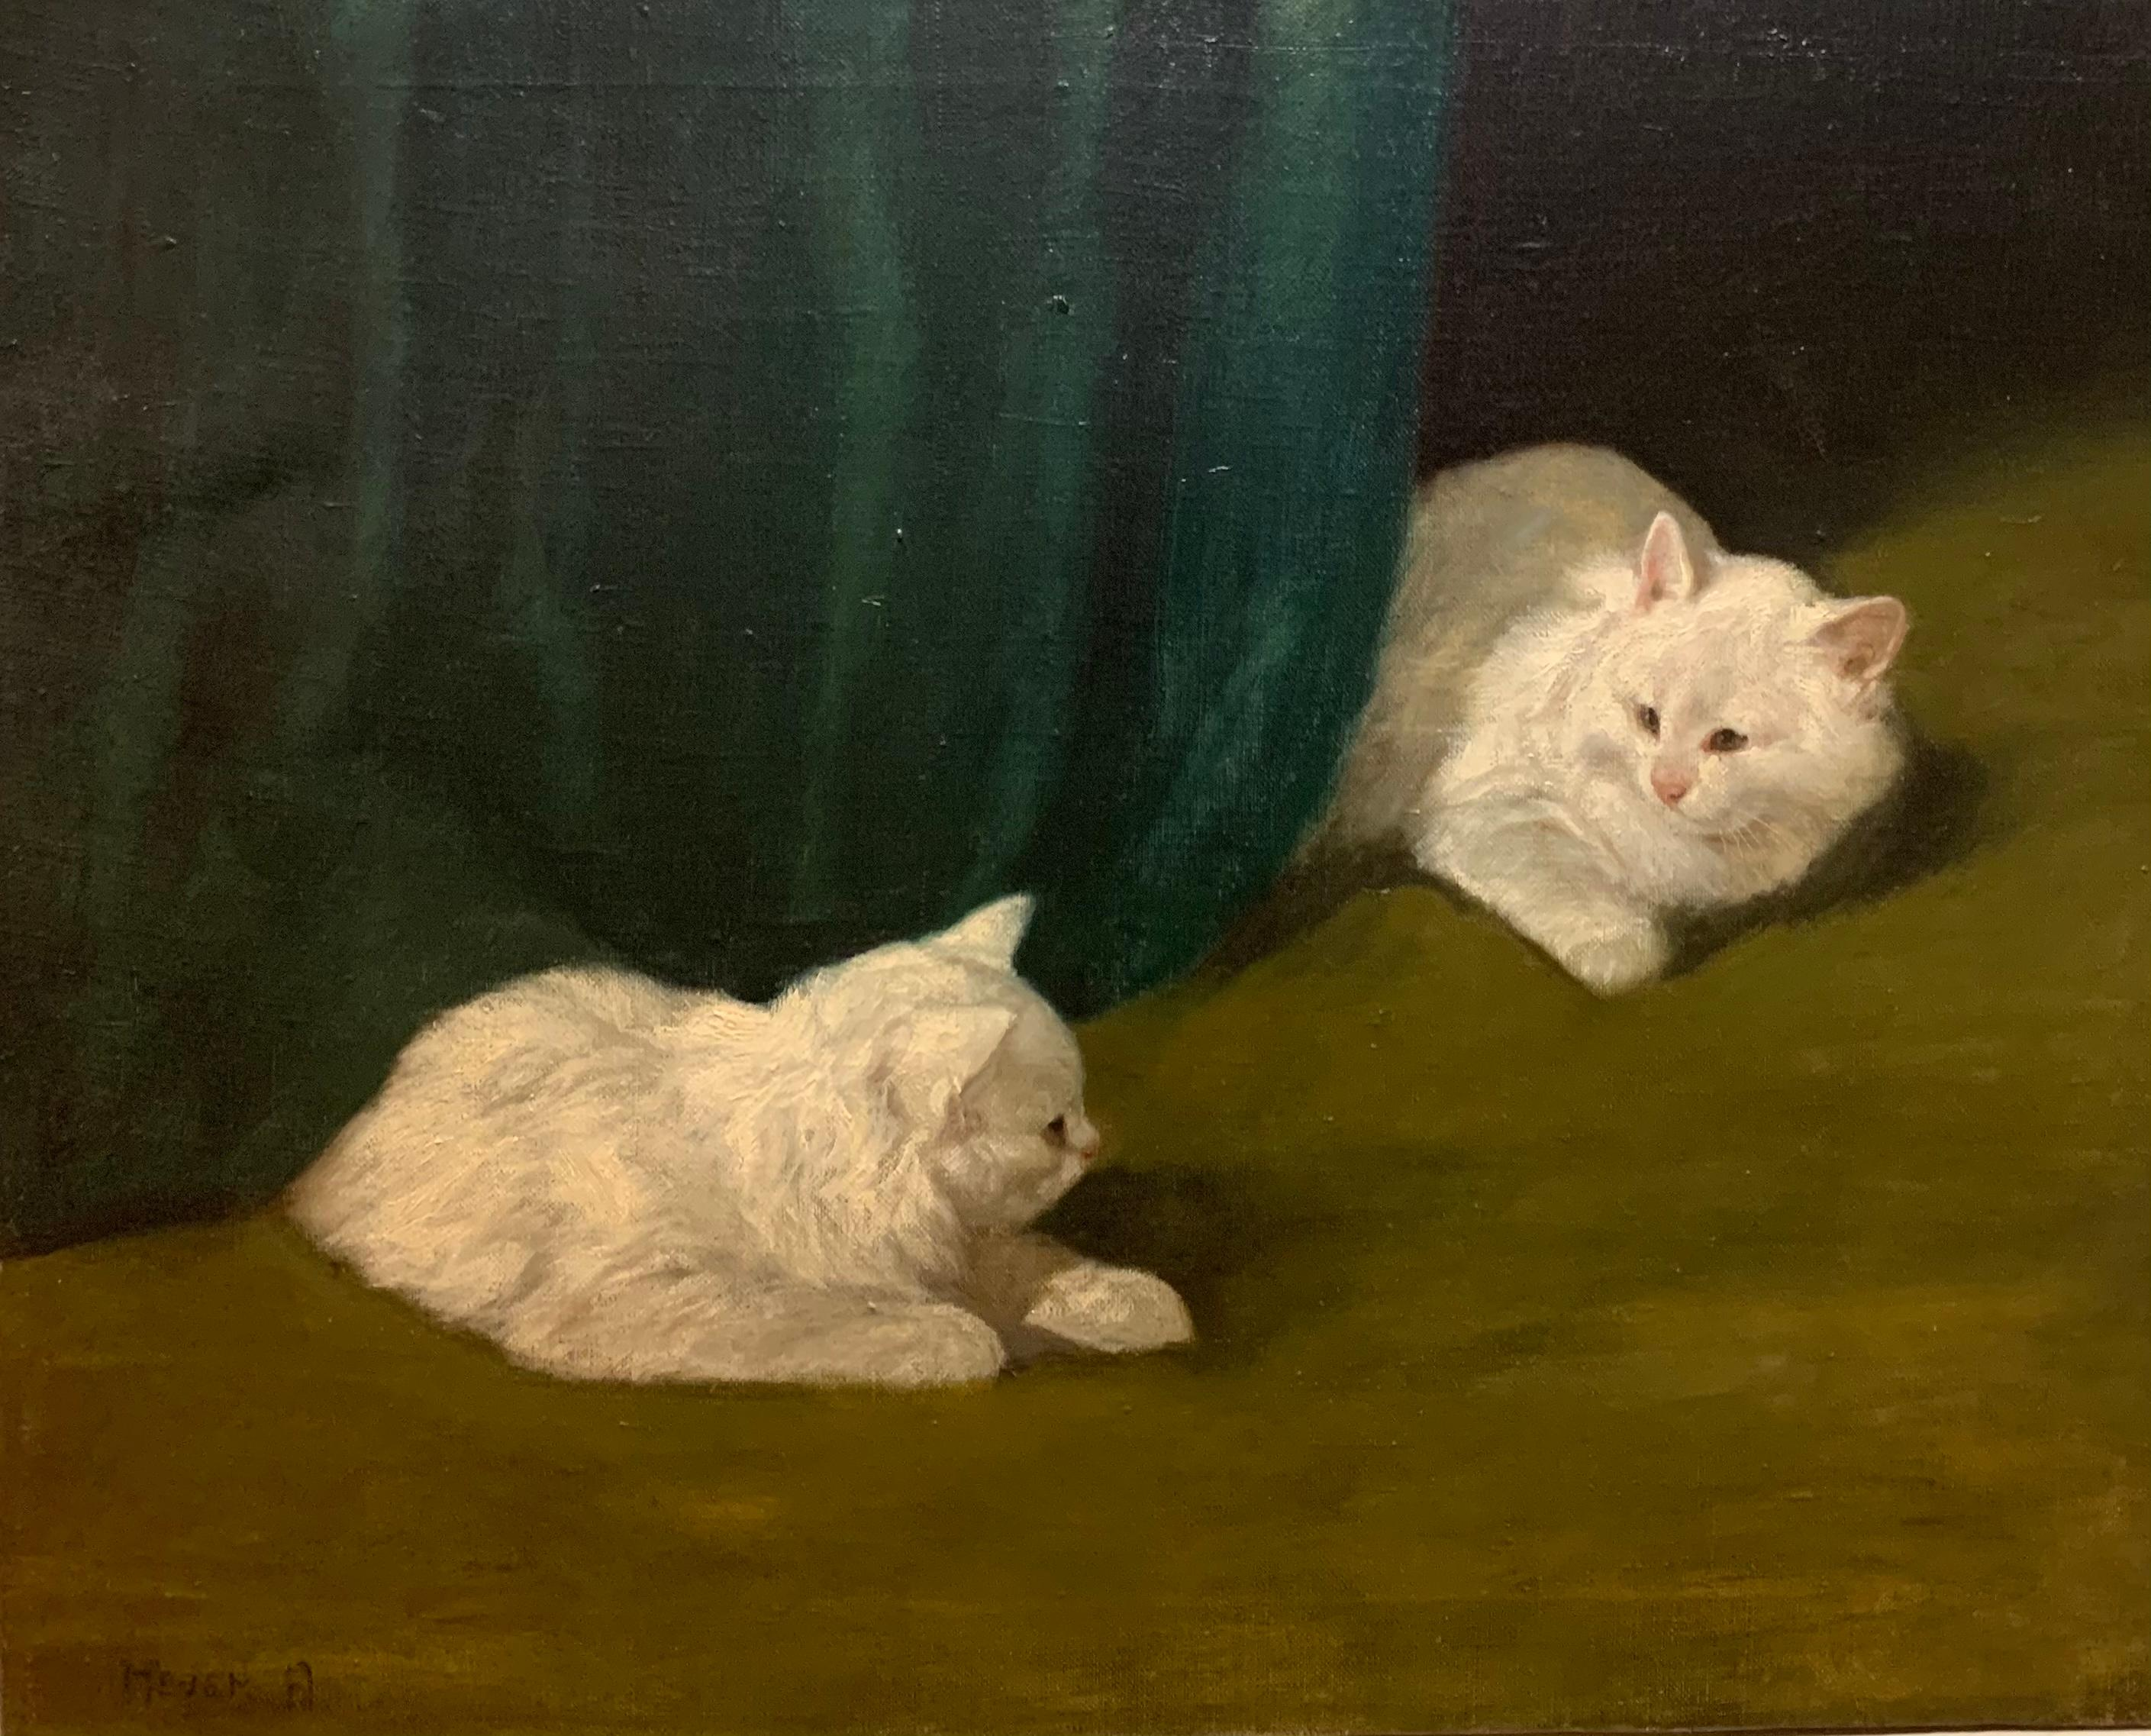 Two White Cats Relaxing Among Green Curtains by Arthur Heyer